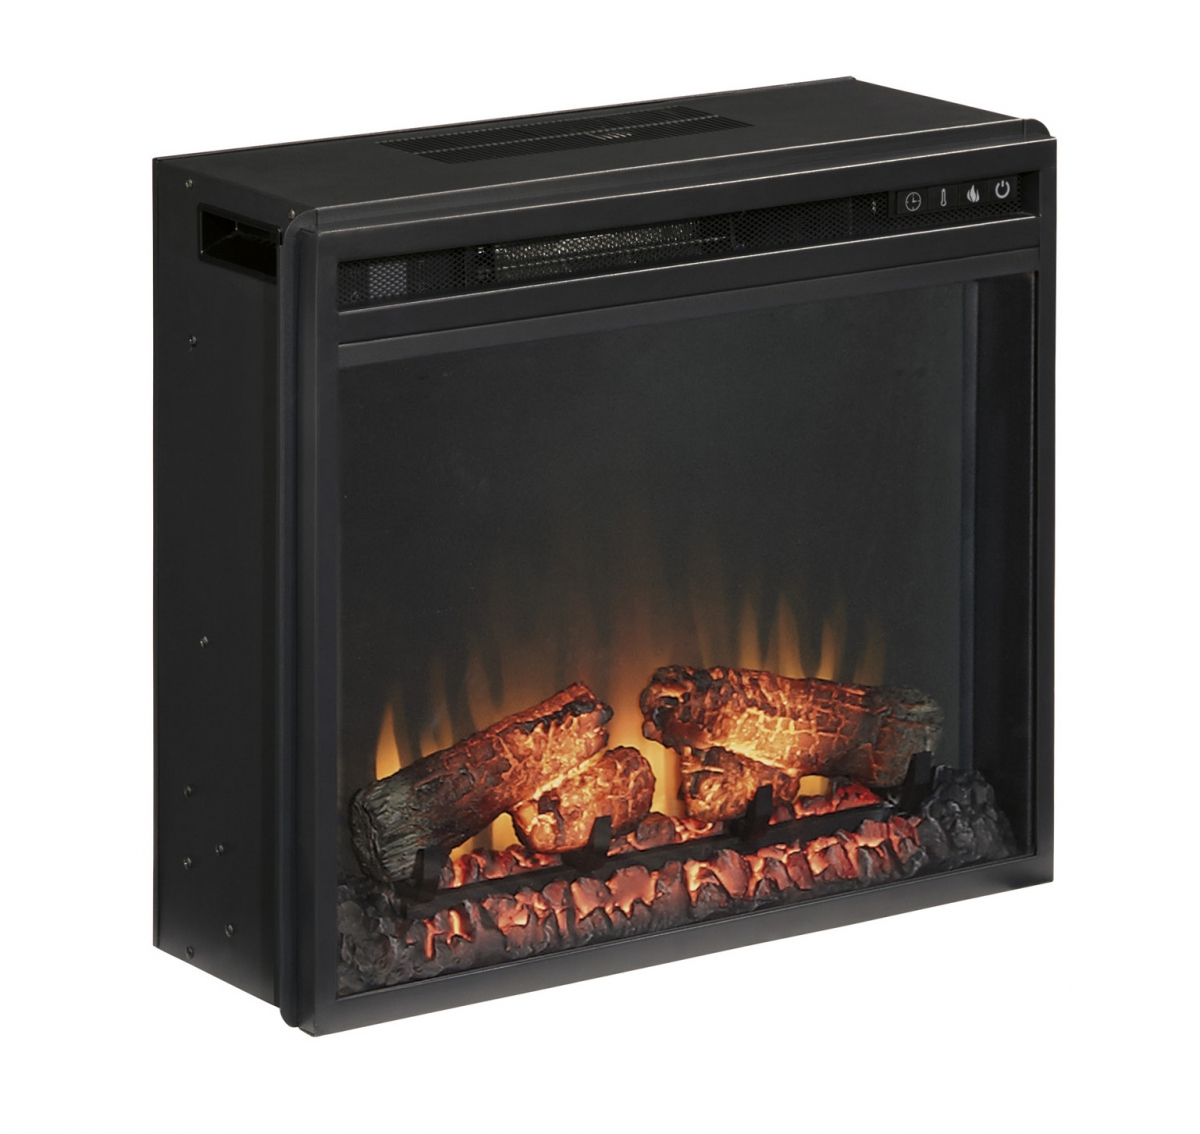 Ashley Furniture Black Fireplace Insert | The Classy Home